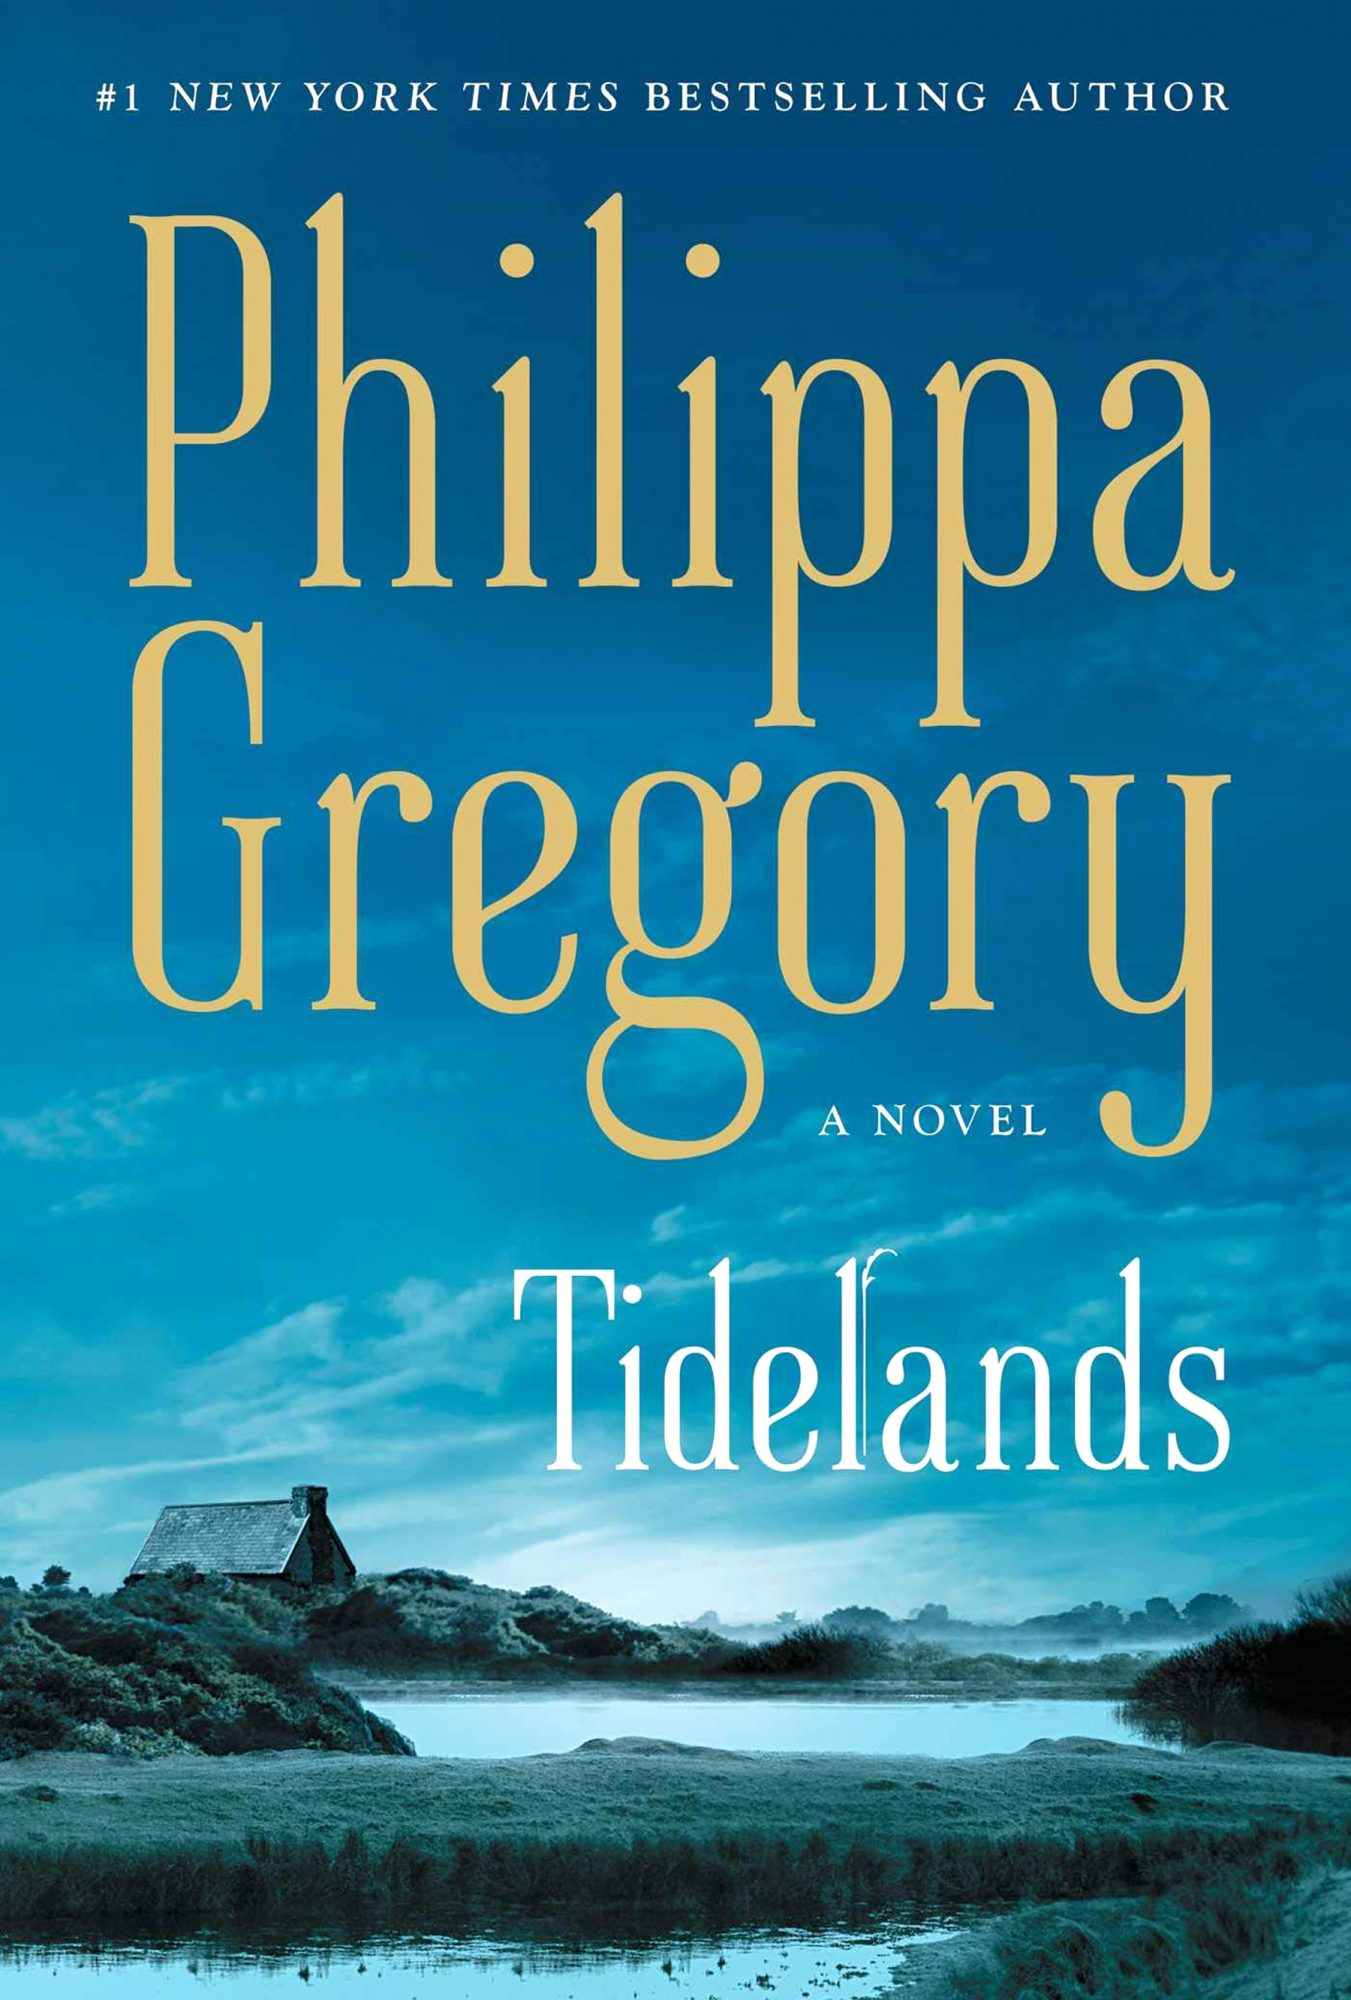 Tidelands, by Philippa Gregory